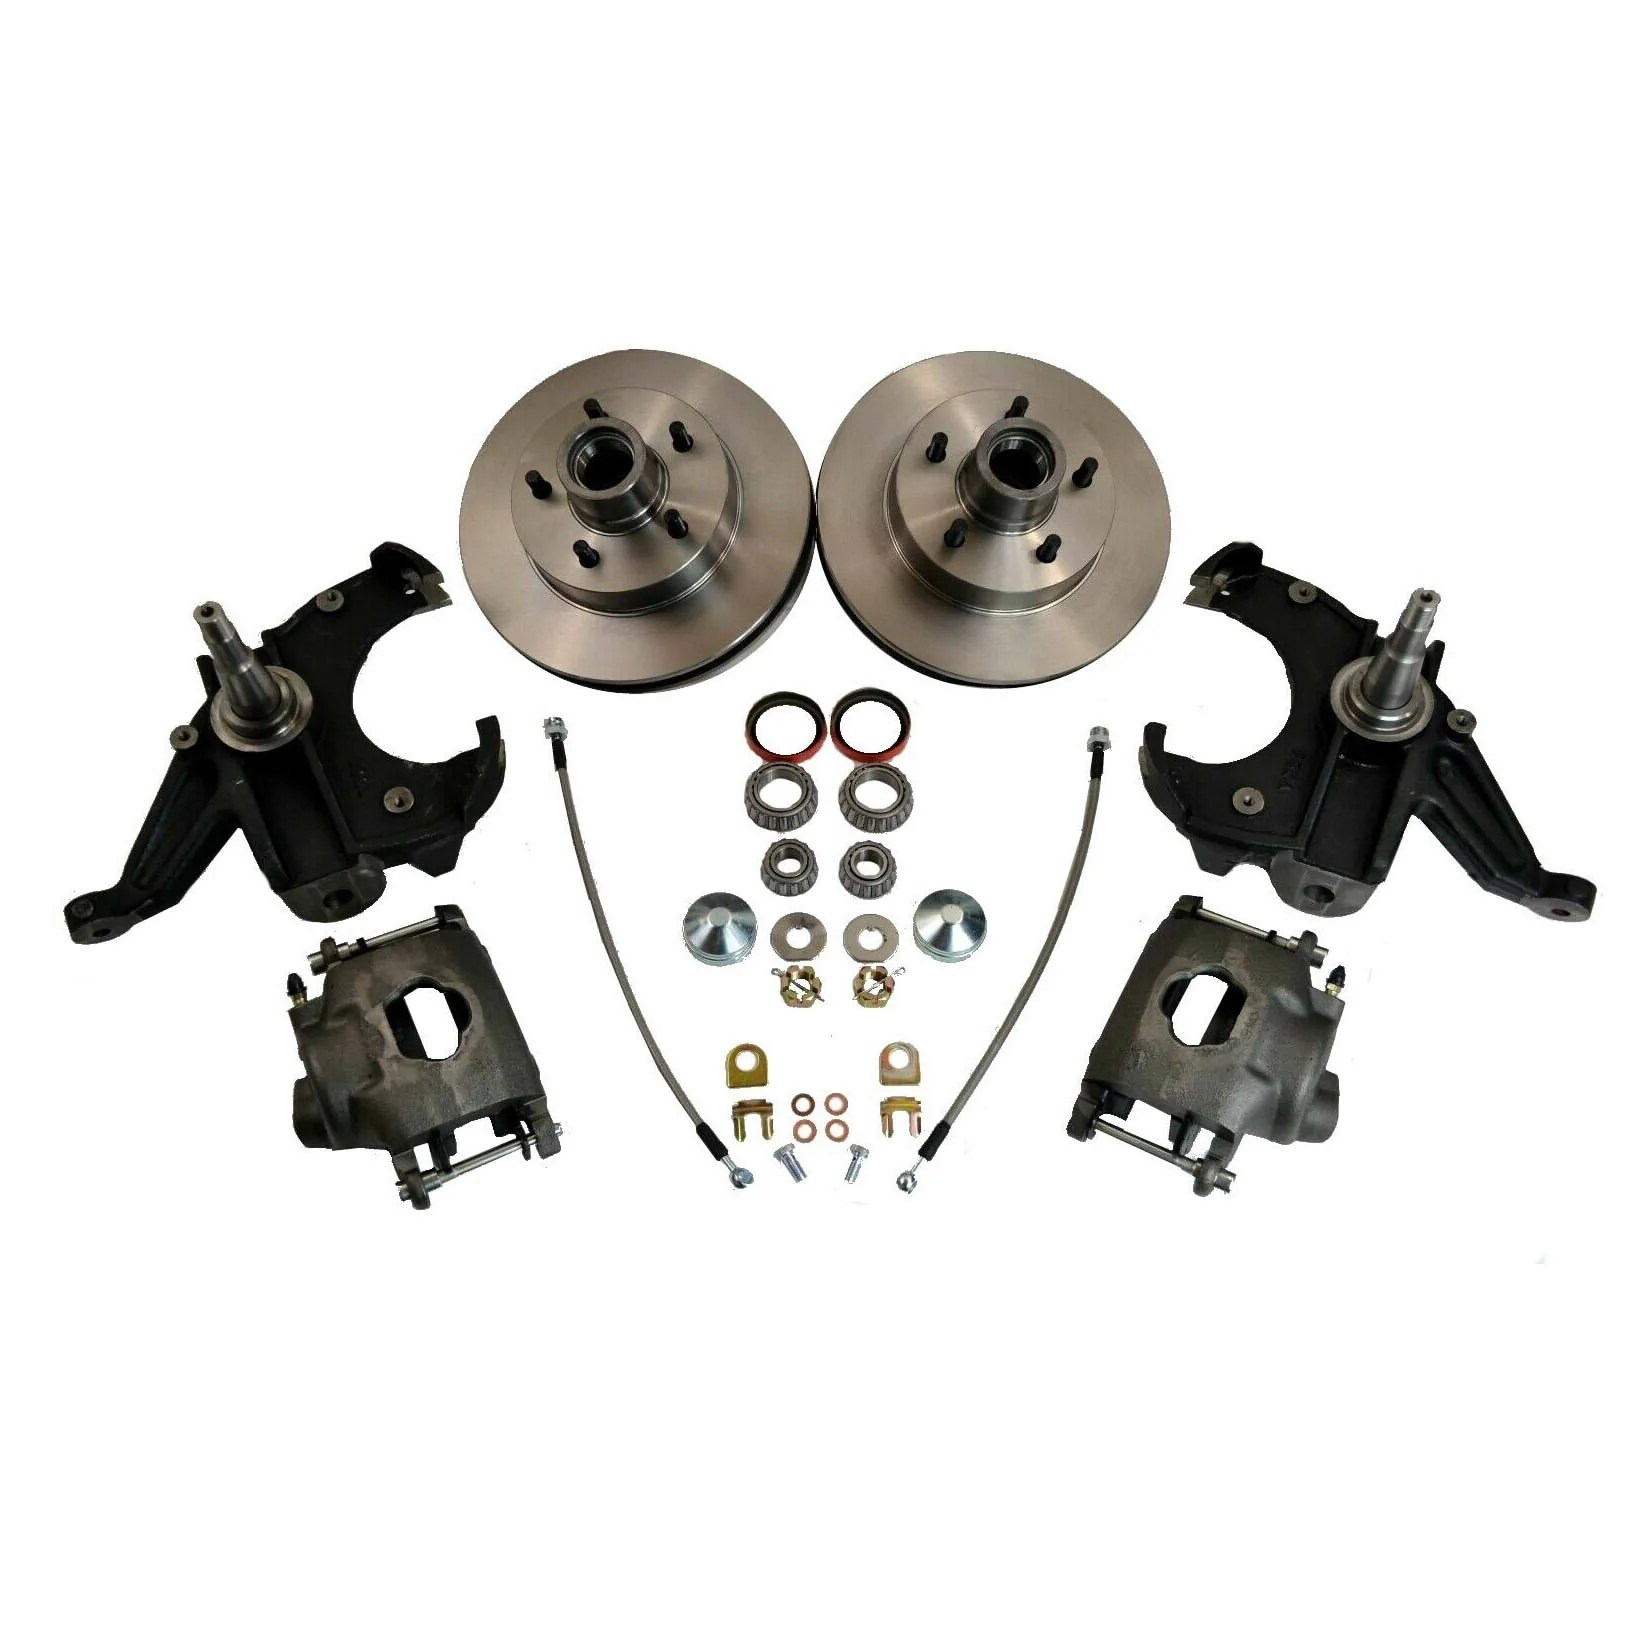 small resolution of chevrolet gm c10 c15 truck 1963 70 disc brake conversion 2 5 drop spindles 5 lug